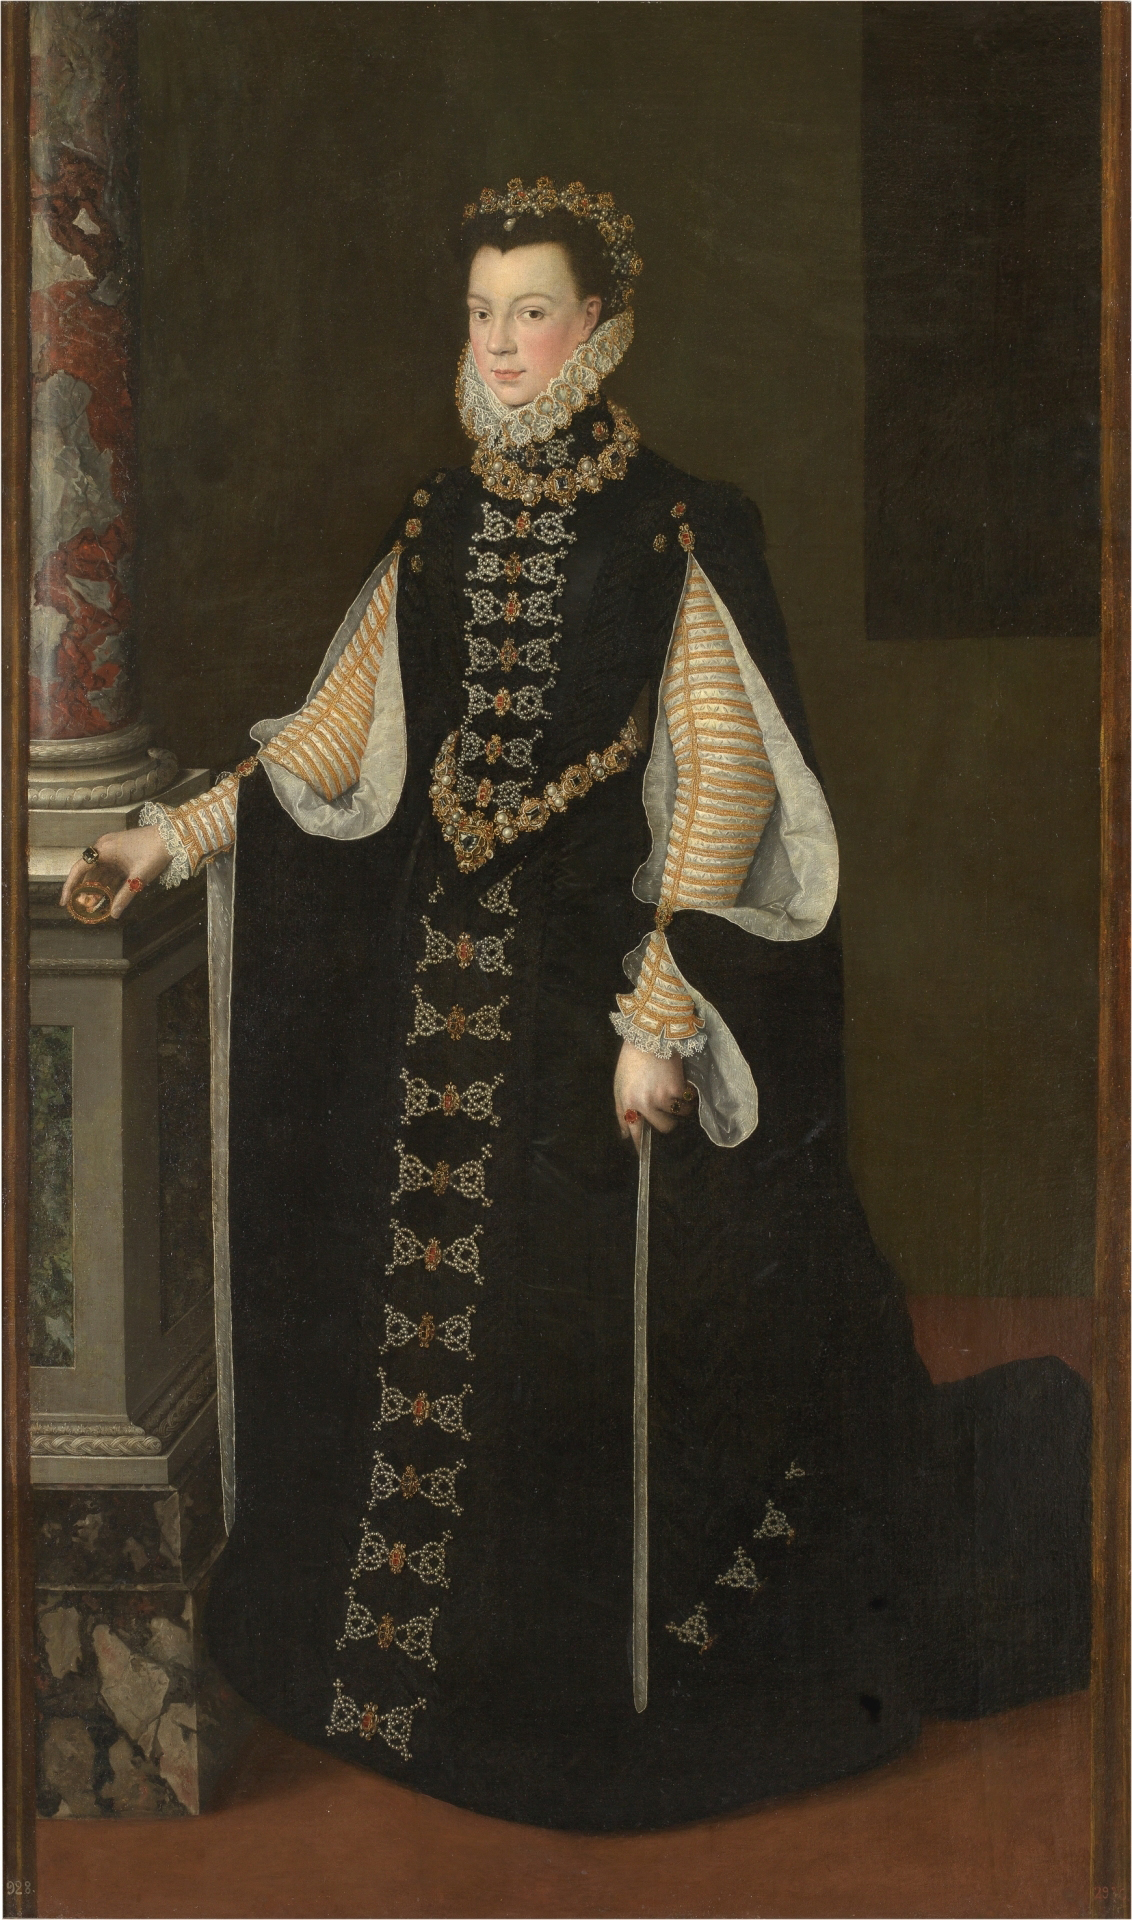 Isabel de Valois holding a portrait of Felipe II, oil on canvas, attributed to Sofonisba Anguissola, 1561-65. (Image courtesy of Prado Museum)